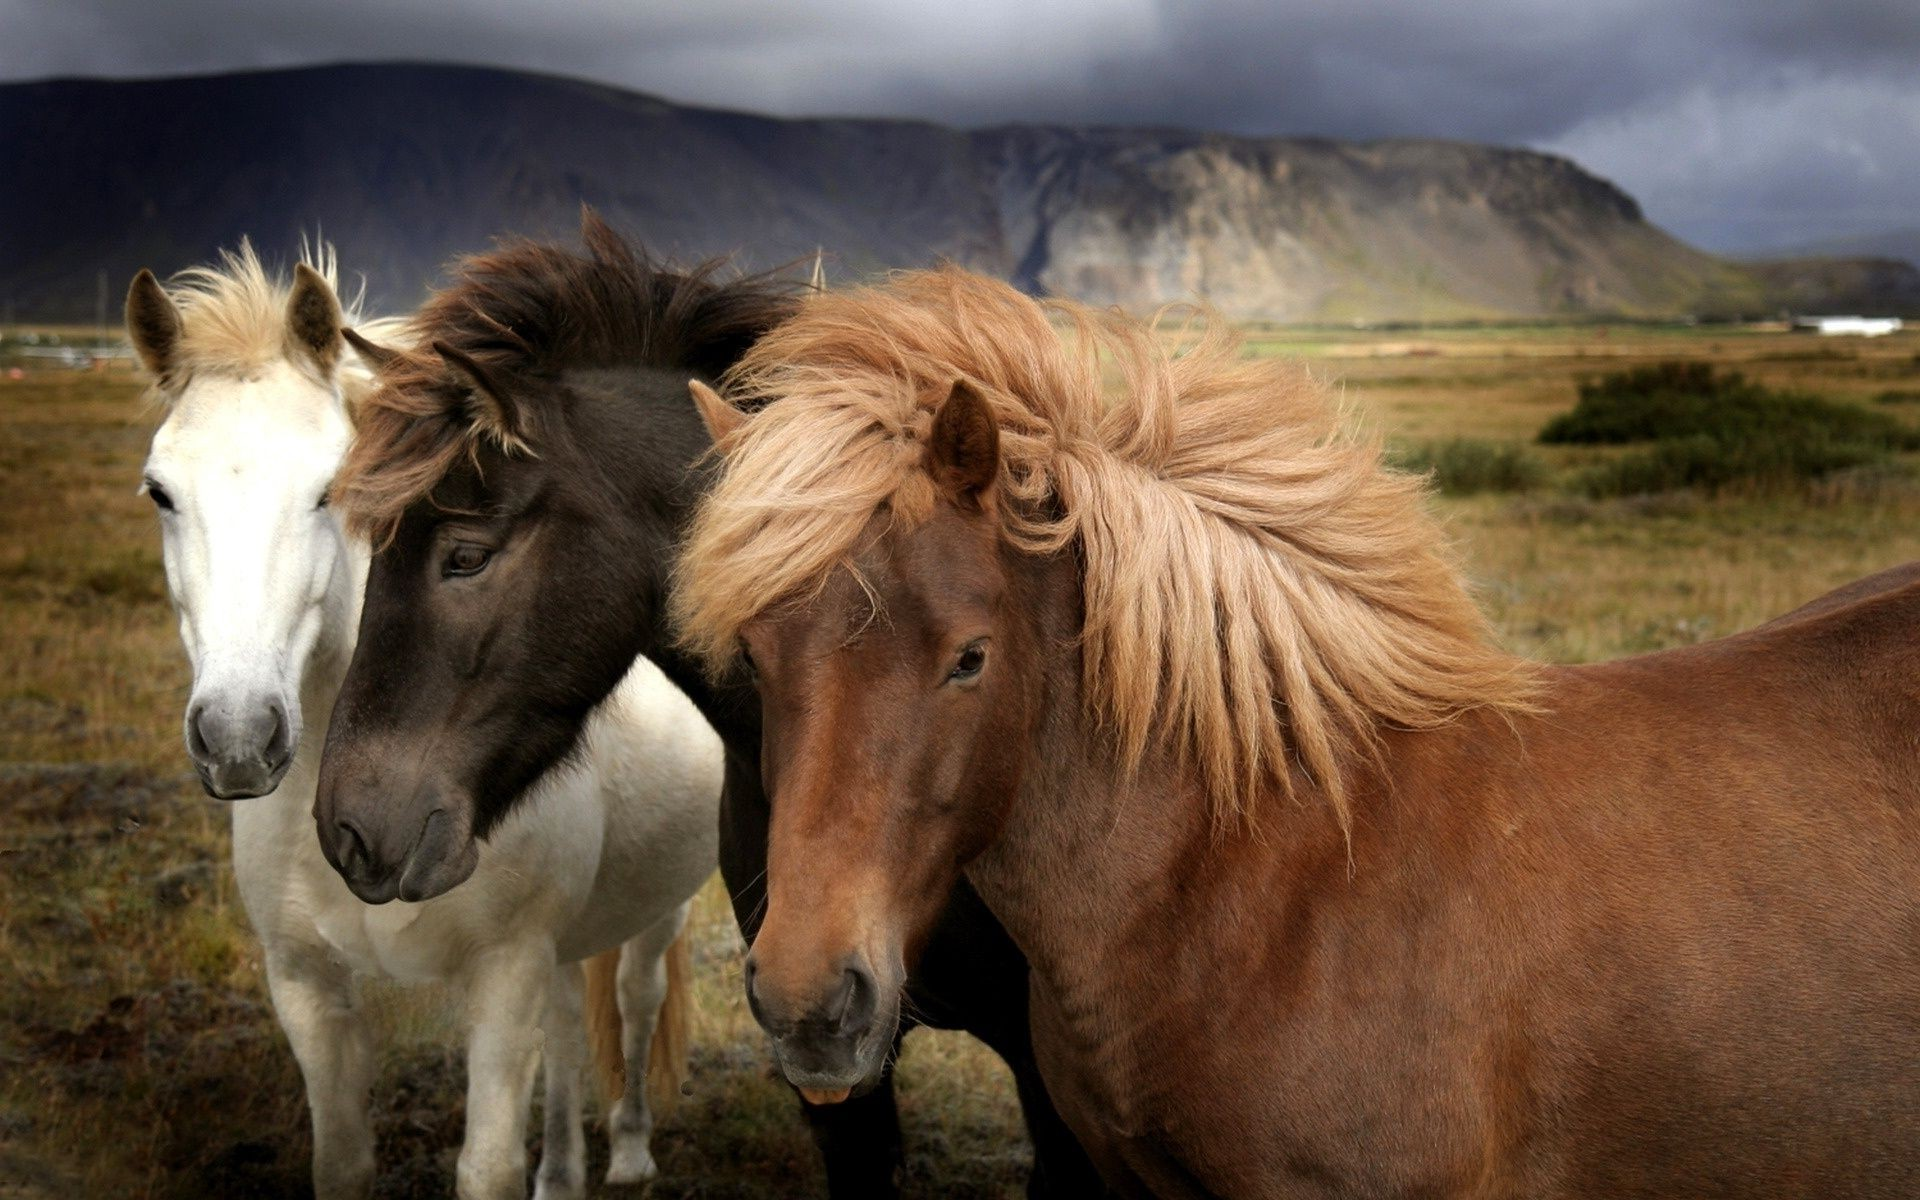 wild horses of different suits with thick manes